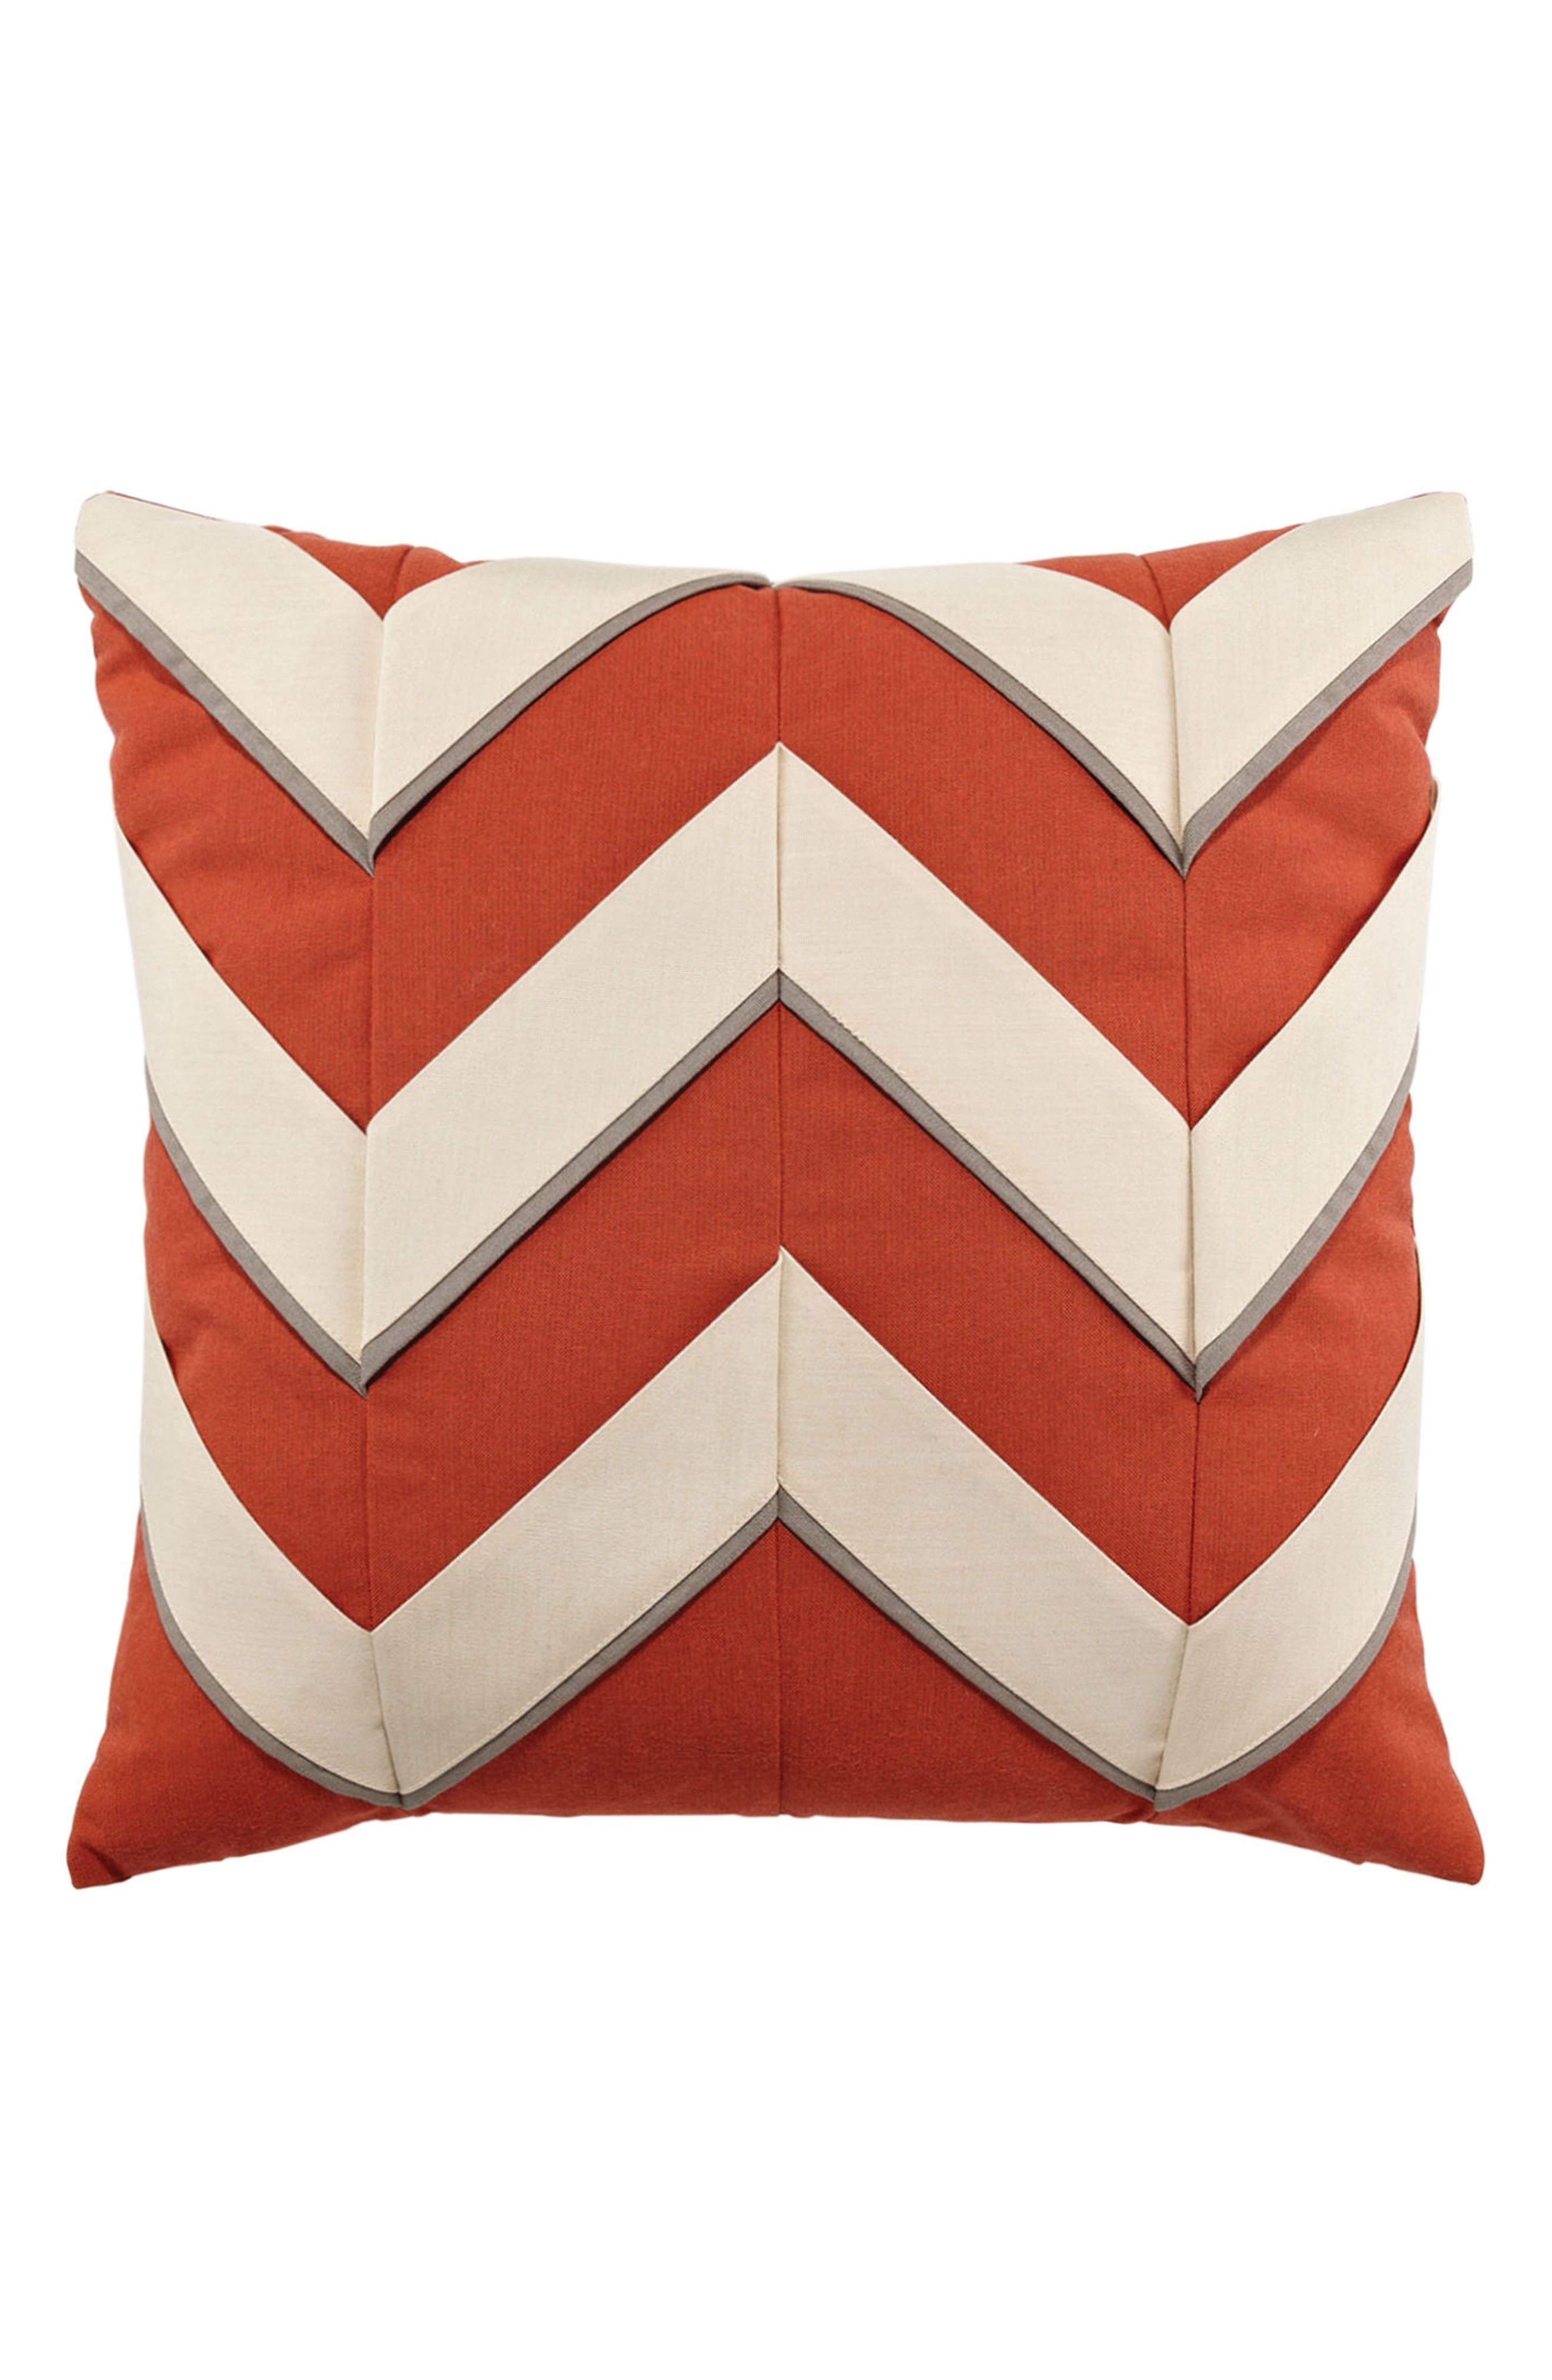 Coral Cruise Indoor/Outdoor Accent Pillow,                         Main,                         color, Orange/ Ivory